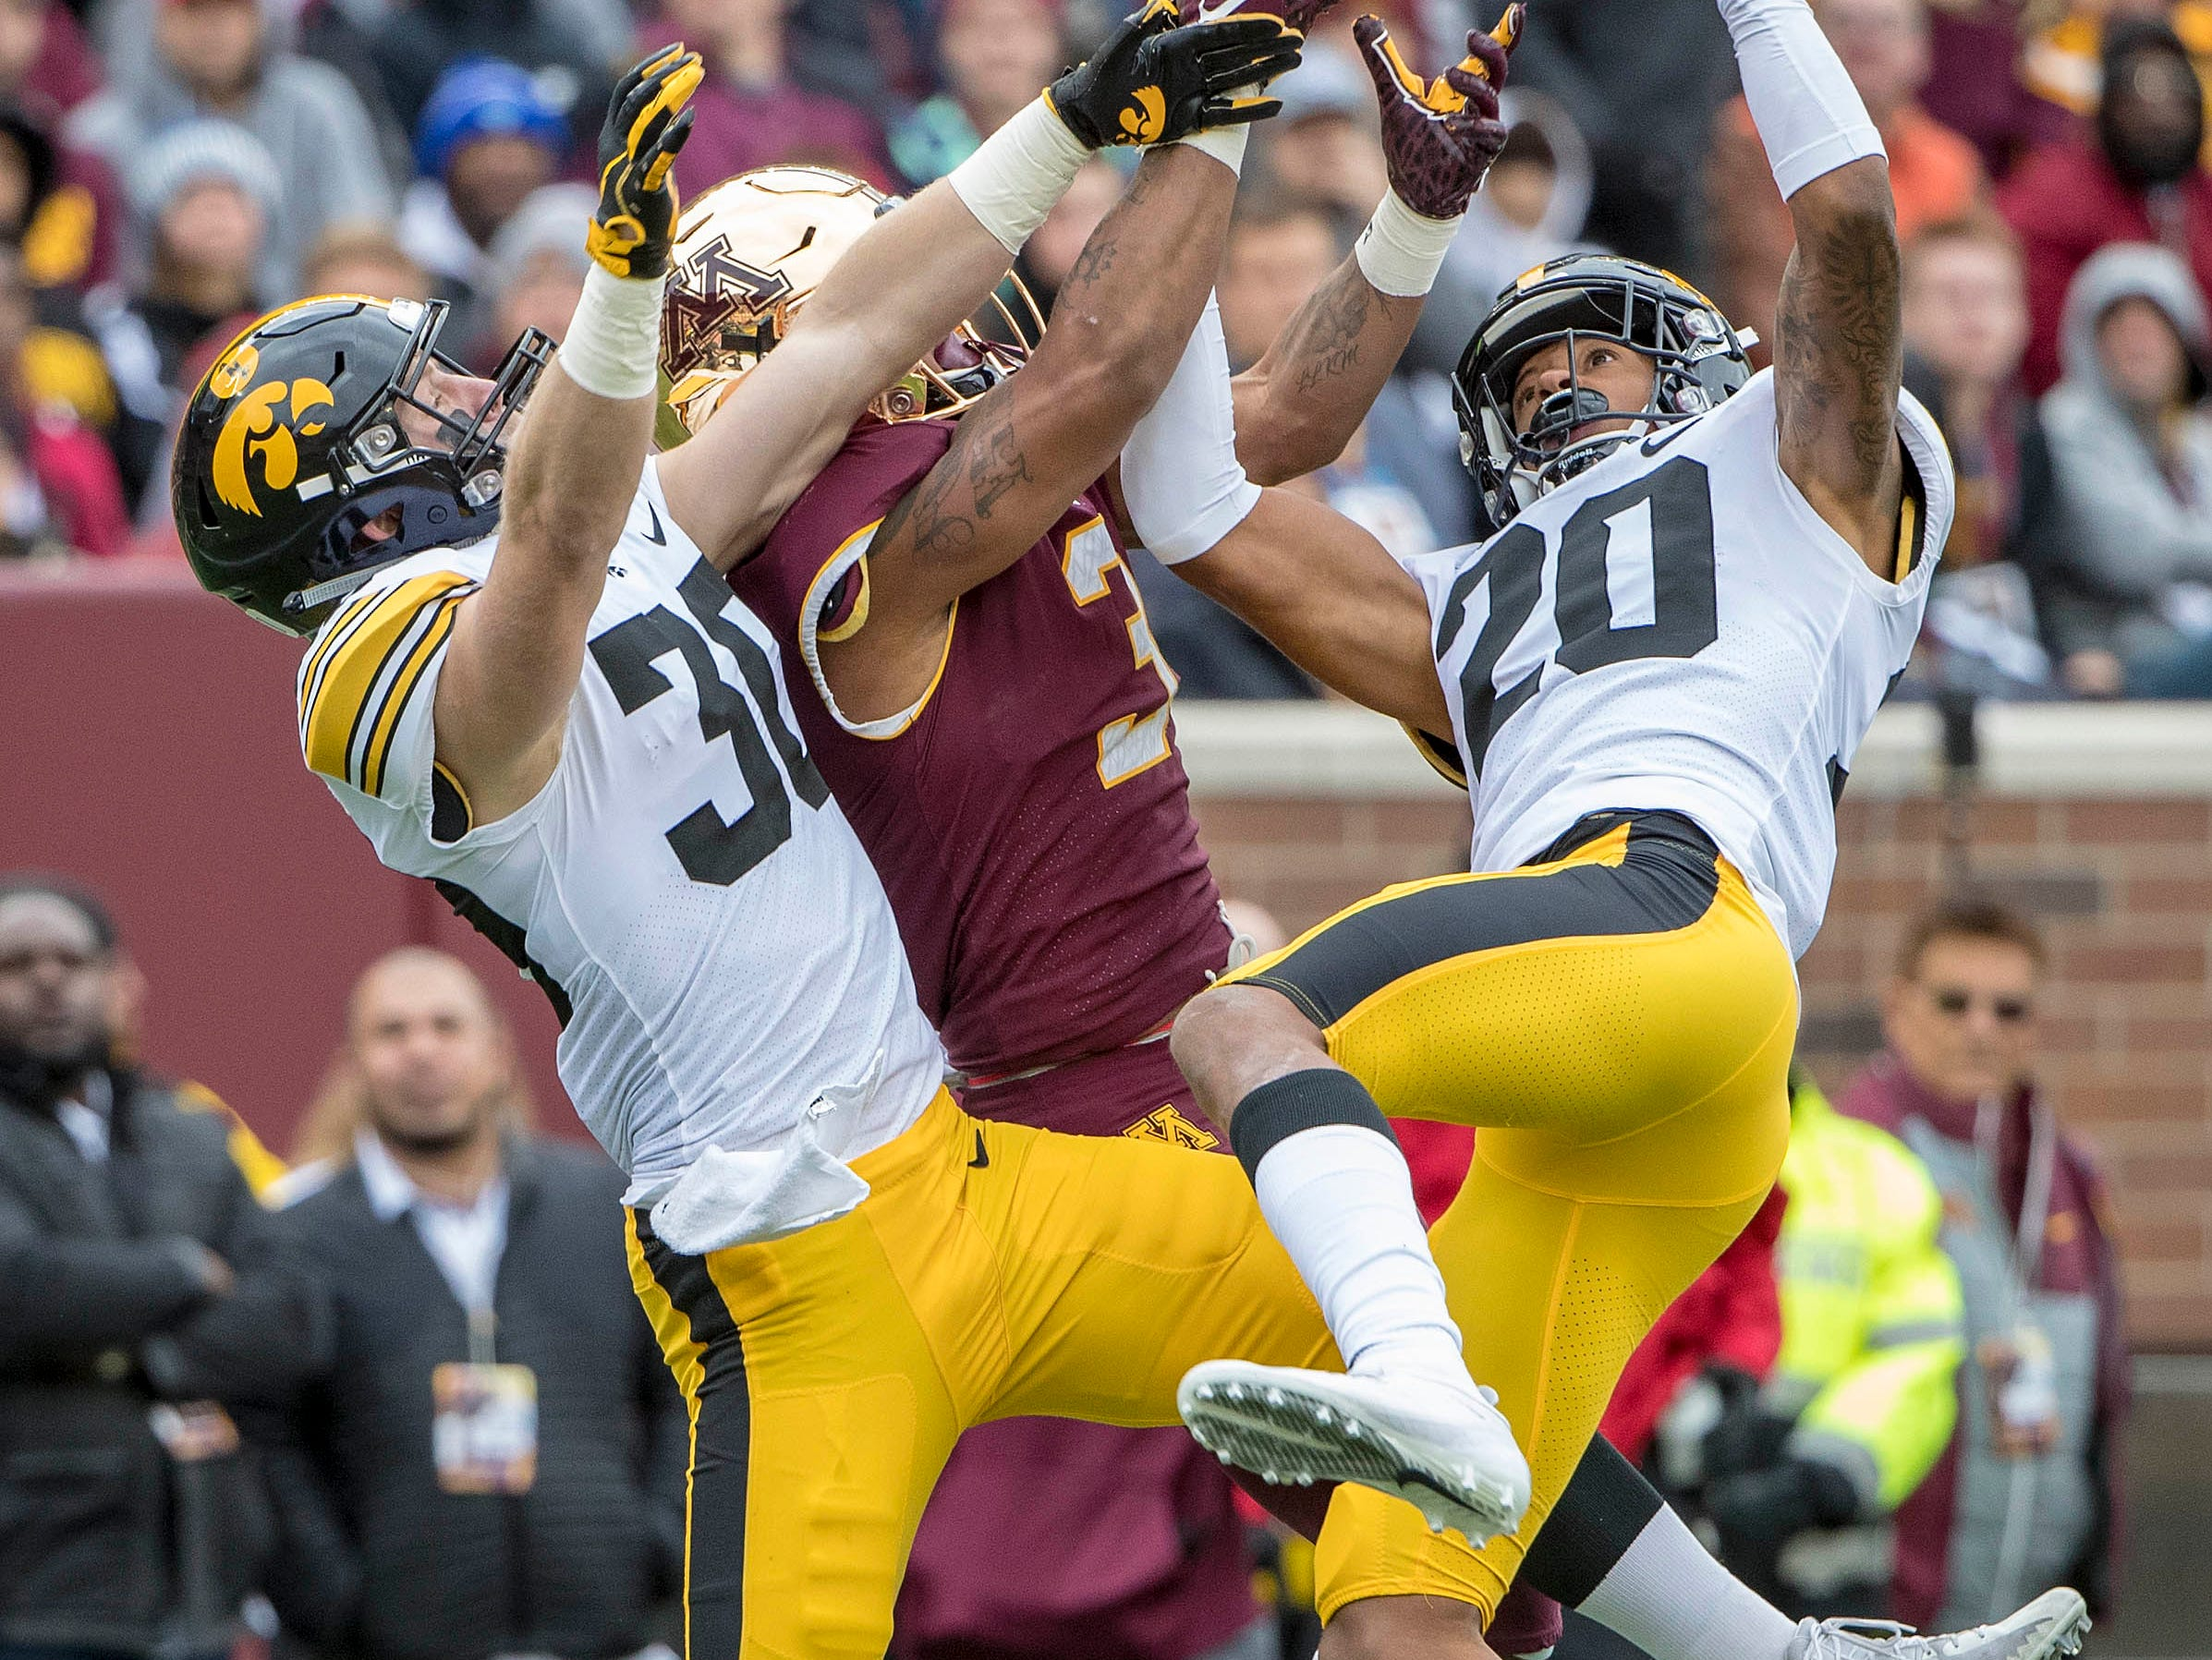 Oct 6, 2018; Minneapolis, MN, USA; Minnesota Golden Gophers wide receiver Chris Autman-Bell (3) and Iowa Hawkeyes defensive back Jake Gervase (30) and defensive back Julius Brents (20) battle for a pass in the first half at TCF Bank Stadium. Mandatory Credit: Jesse Johnson-USA TODAY Sports